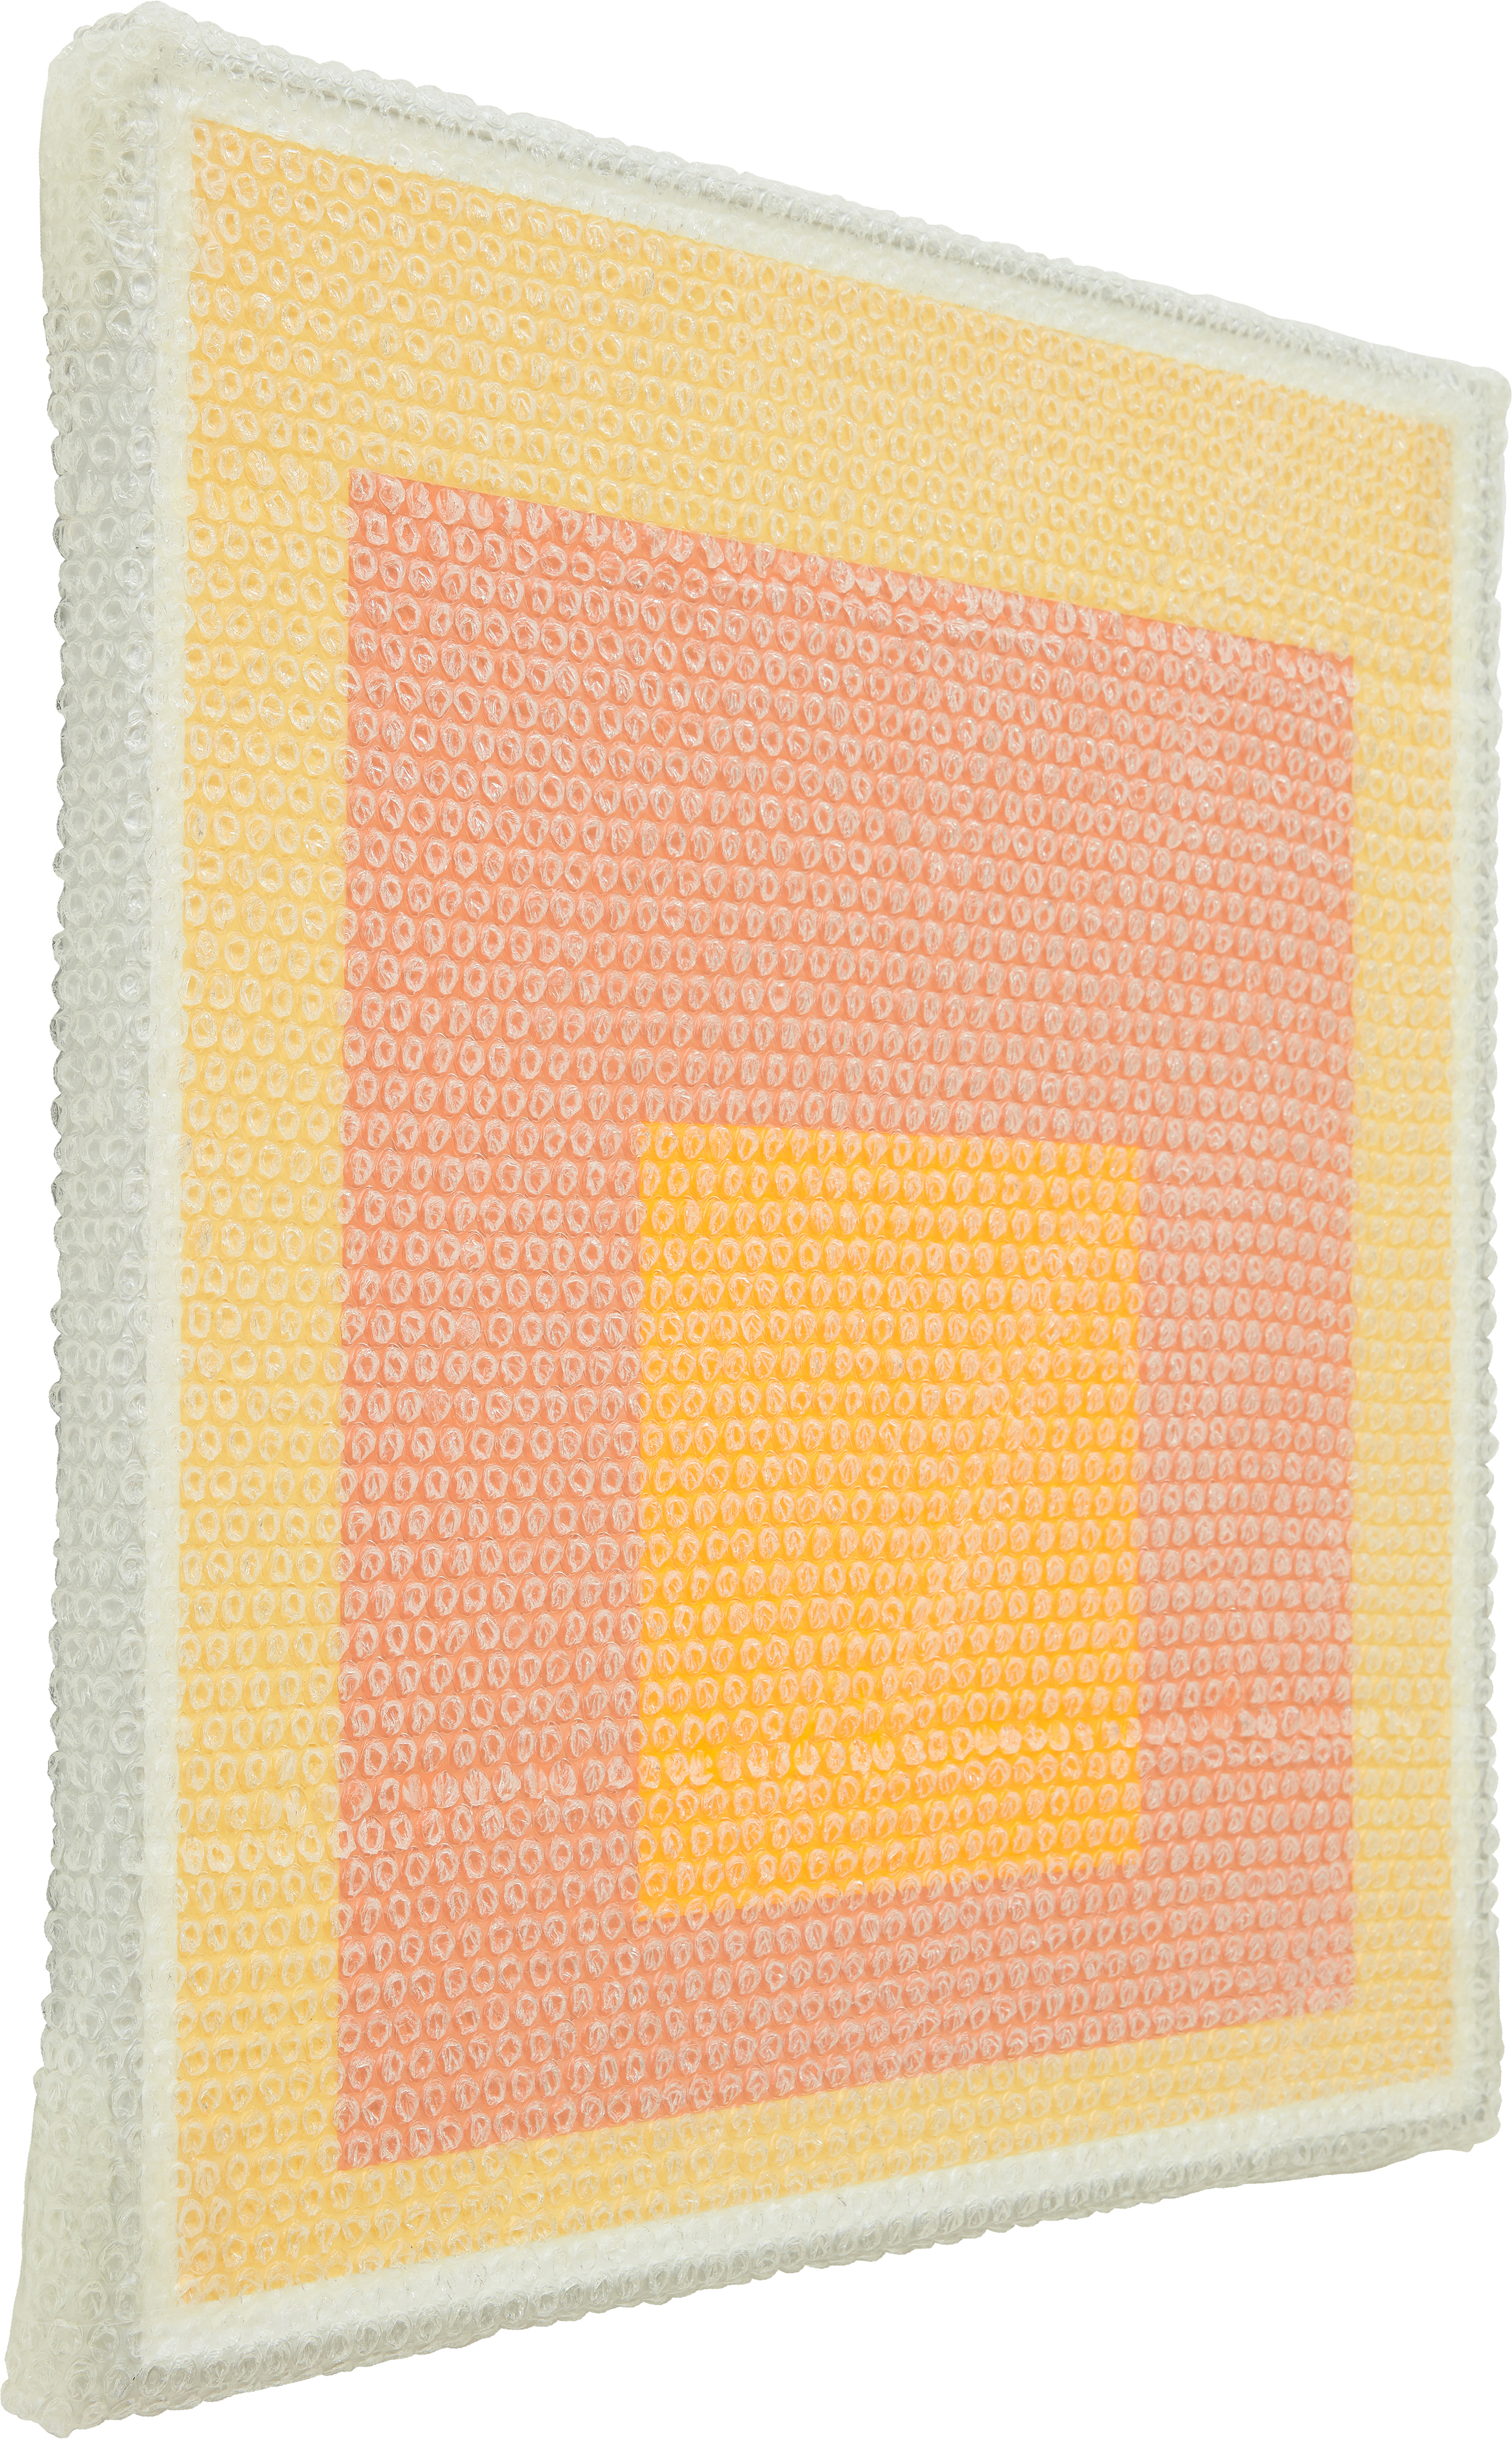 tammi campbell homage to the square with bubble wrap and packing tape 9